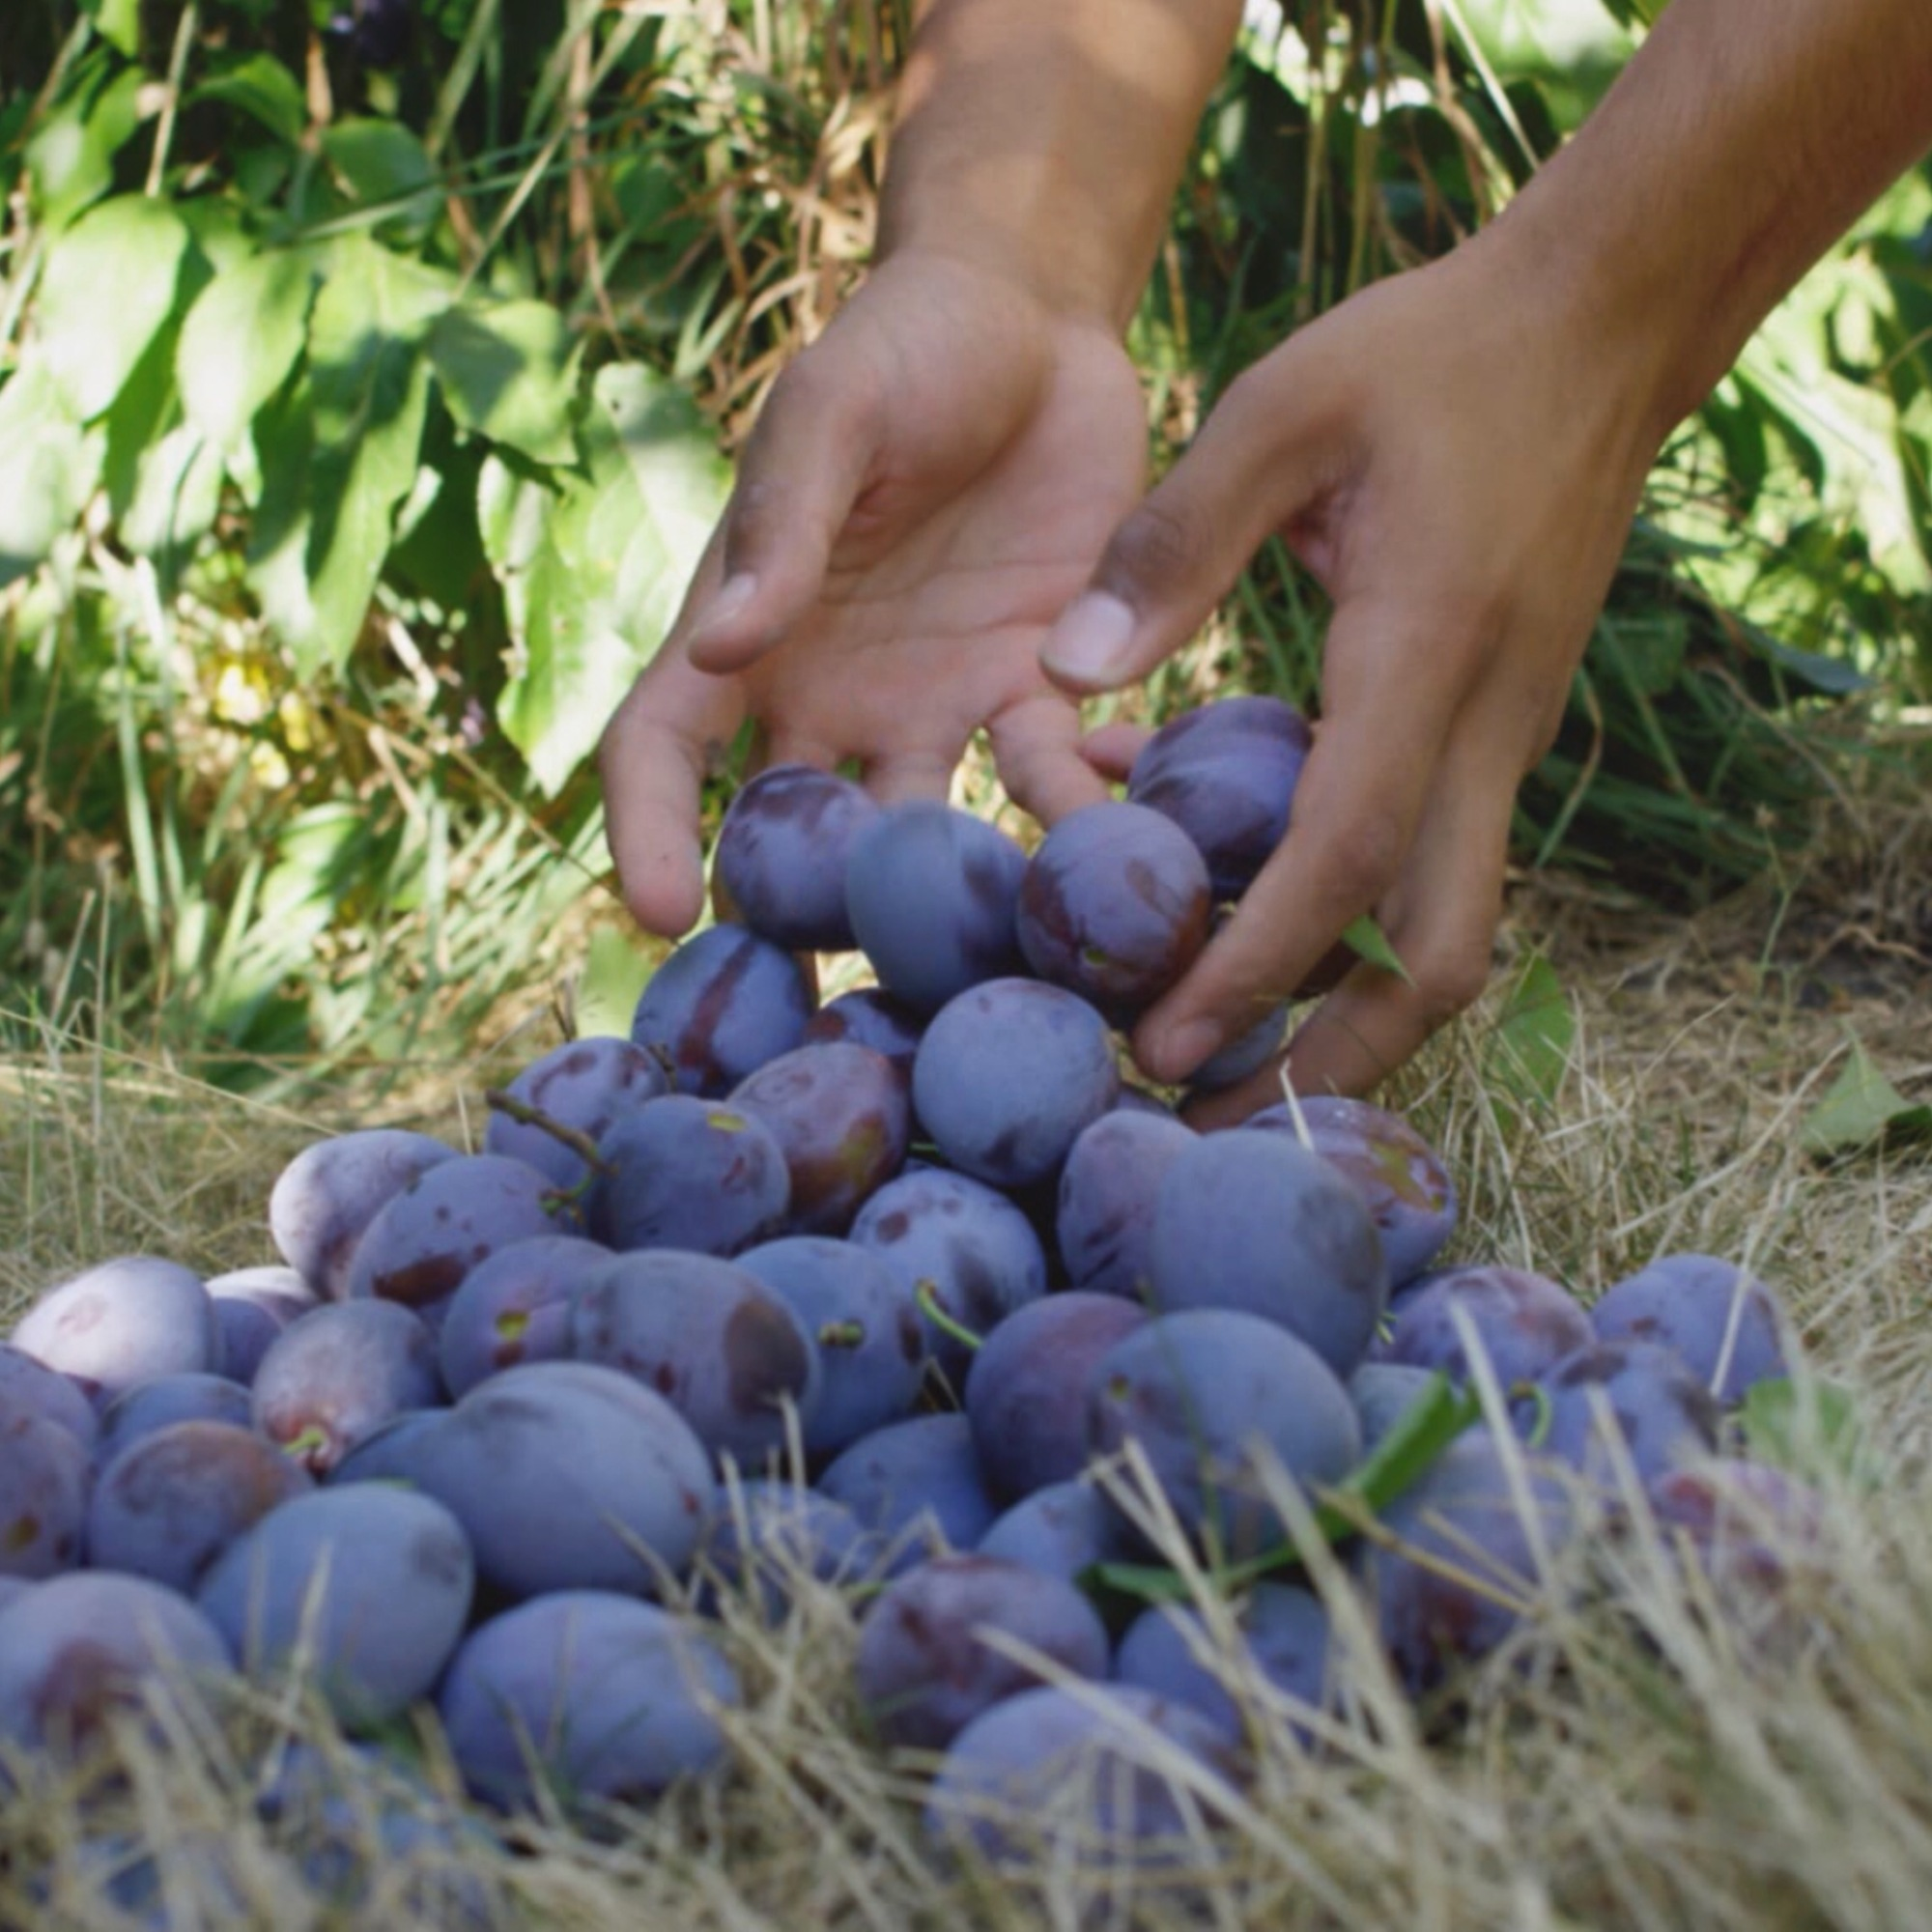 Hands gathering plums